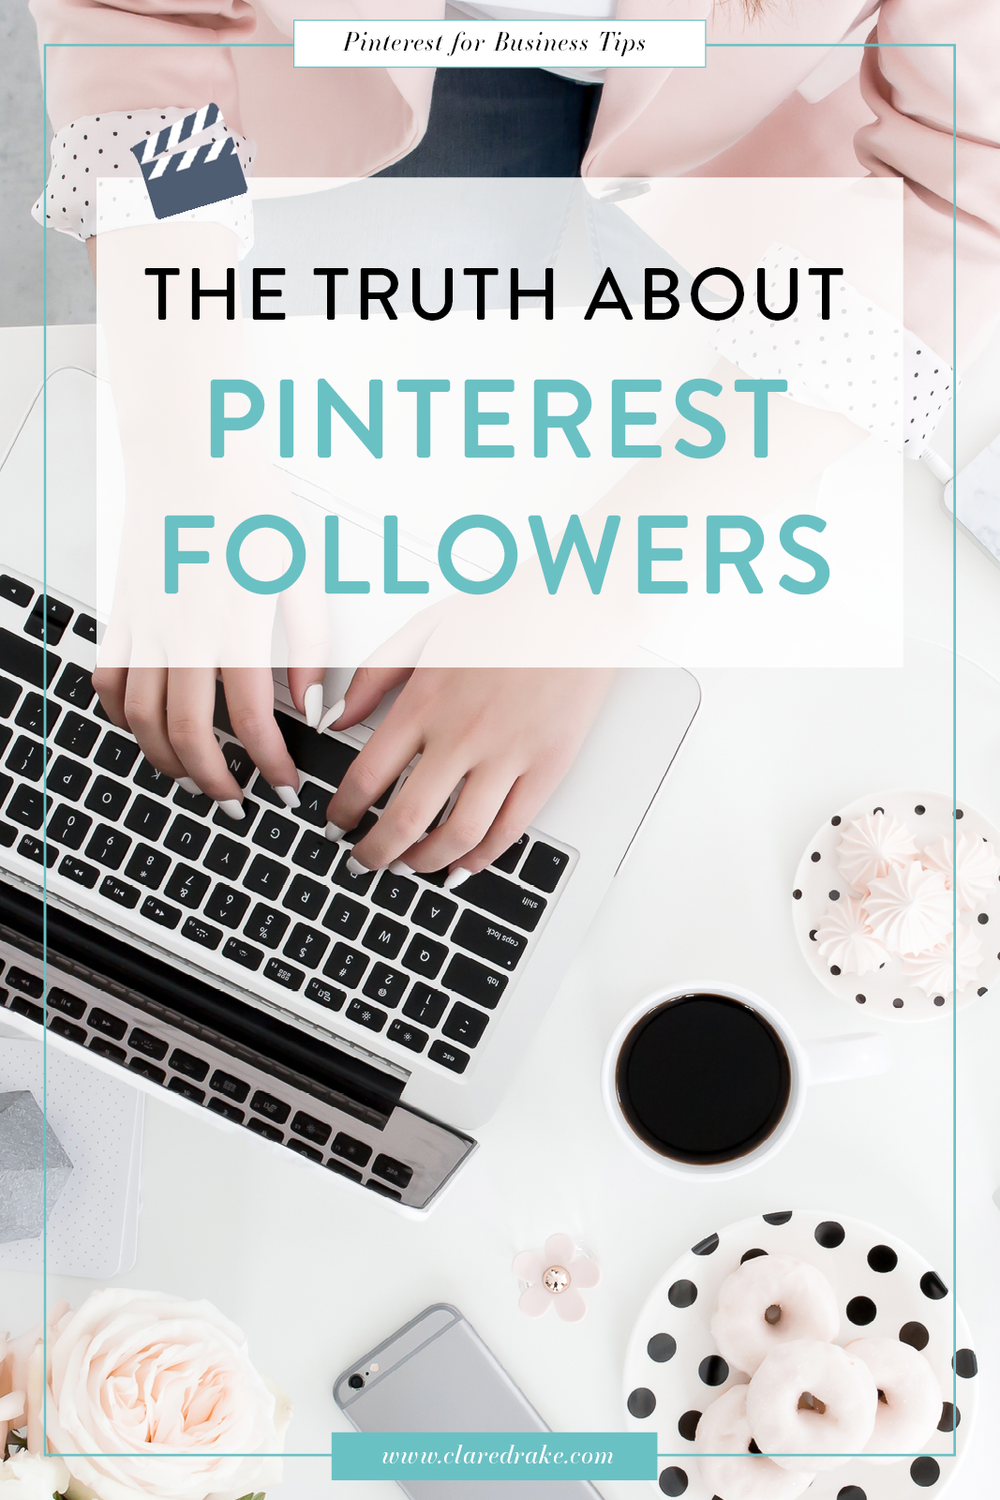 If you want to get more followers on Pinterest, you need to watch this super short video first!